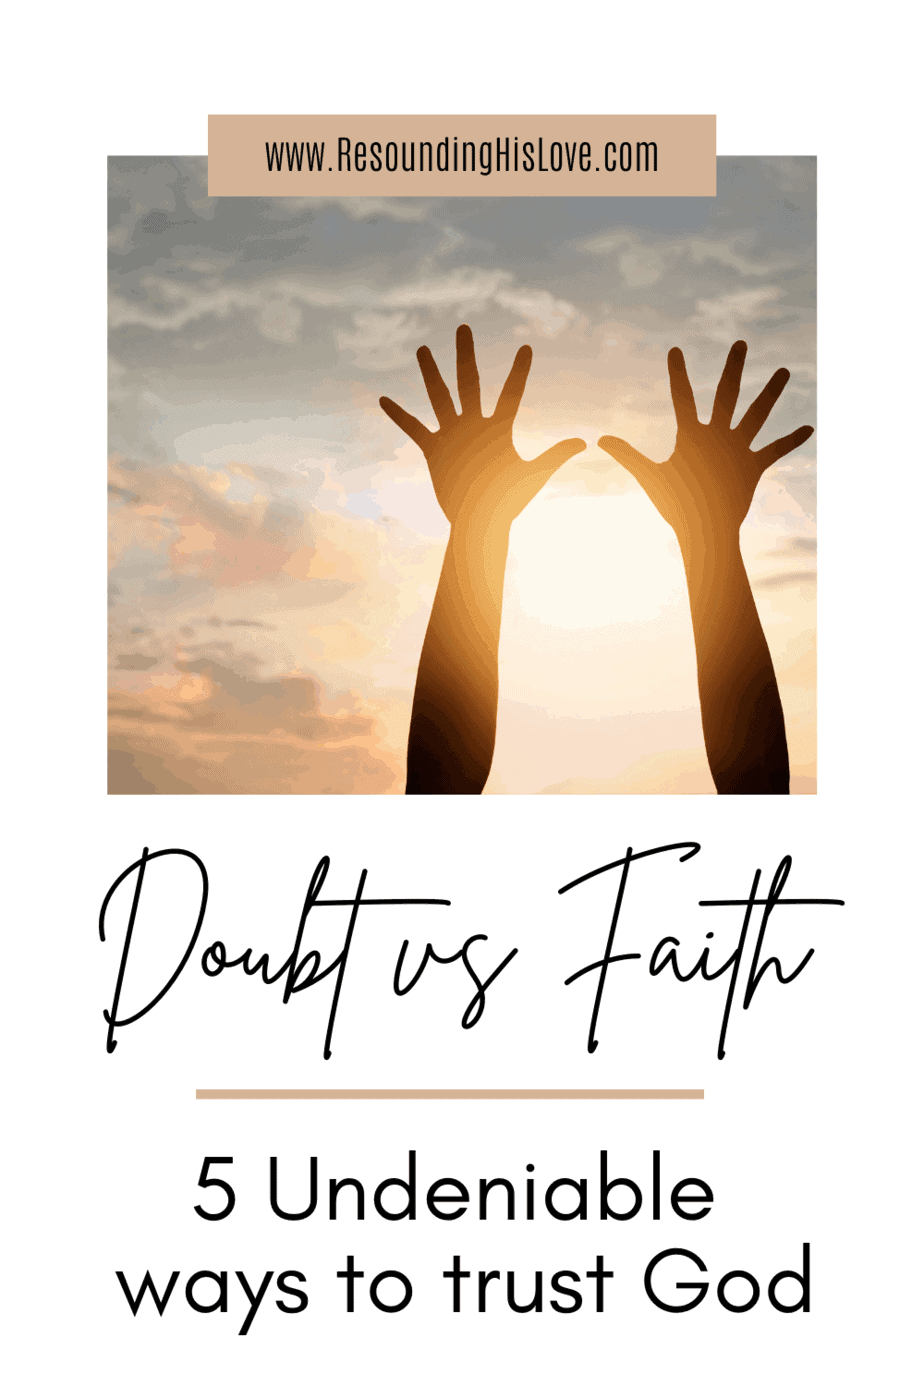 an image of a woman's hands stretching towards heaven in a golden sunset background with text Doubt vs Faith: 5 Undeniable Ways to Trust God